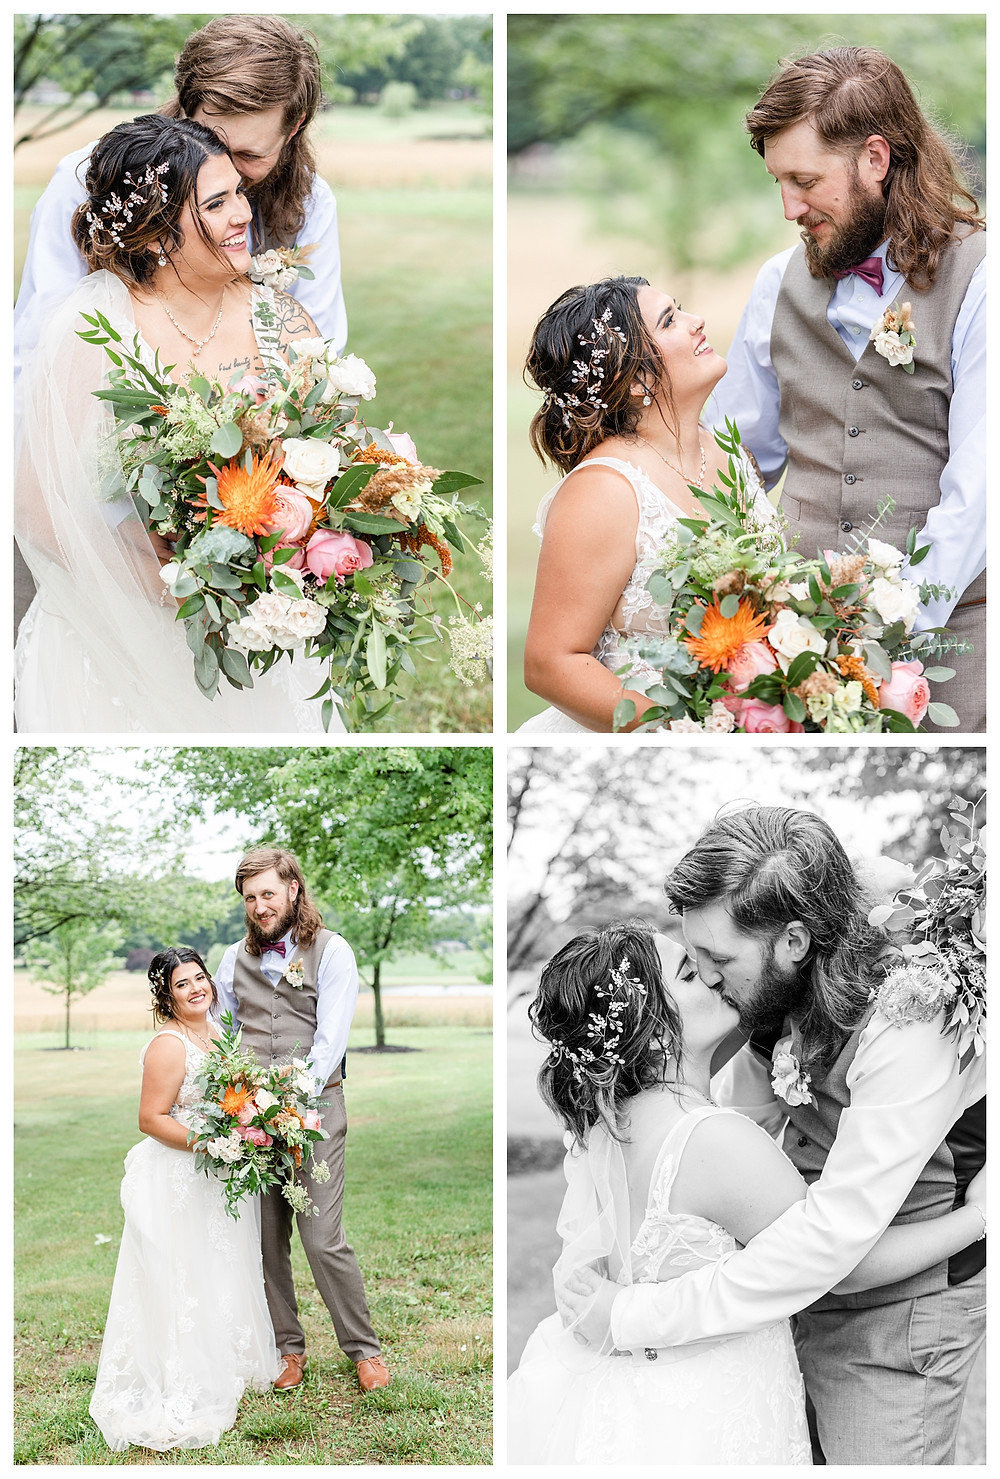 Josh and Andrea wedding photography husband and wife photographer team michigan pictures photo shoot farm barn spring bride and groom farm barn kissing